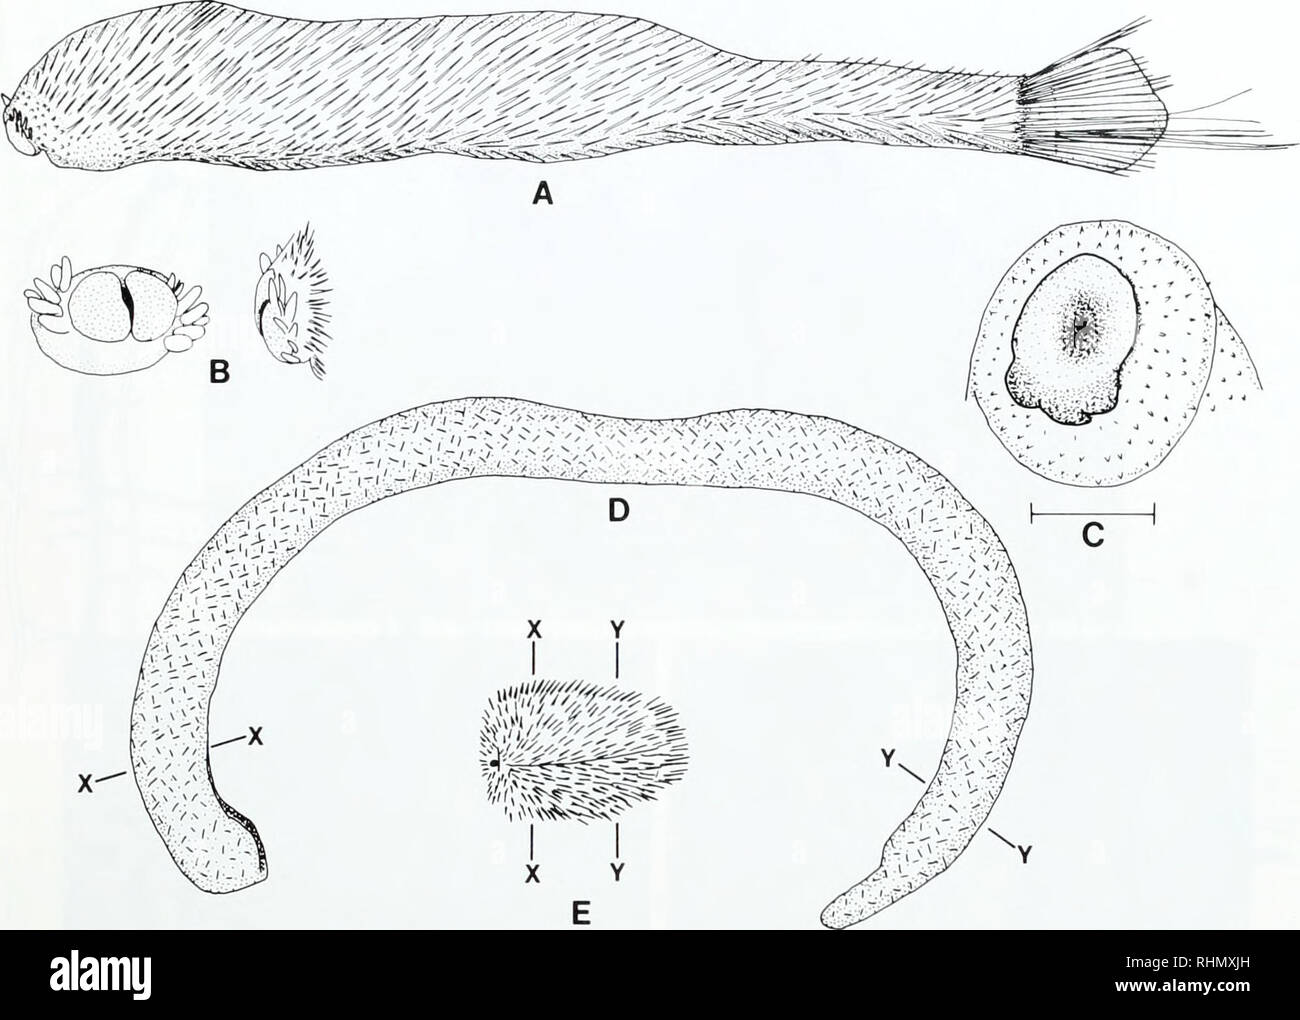 . The Biological bulletin. Biology; Zoology; Biology; Marine Biology. APLACOPHORA: PROGENETIC COELOMATES 65. Figure 7. (A-C) Chaetodermomorpha. (A. B) (.'kern'derma lurnerae. entire animal (antenor to left) and divided oral shield (I'rom Scheltema, 1985, fig. 3L, O. P). (C) Oral shield of SculOfiim megaradulalu.i (cf., Fig. 8A) (from Scheltema, 1988, fig. 6). (D. E) Neomeniomorpha. (D) Dorymenia sp. (E) A new neomenioid genus and species in the family Simrothicllidae. D and E are drawn to the same scale, anterior to left; the midgut and gonad lie between X-X and Y-Y. in its plesiomorphic state - Stock Image